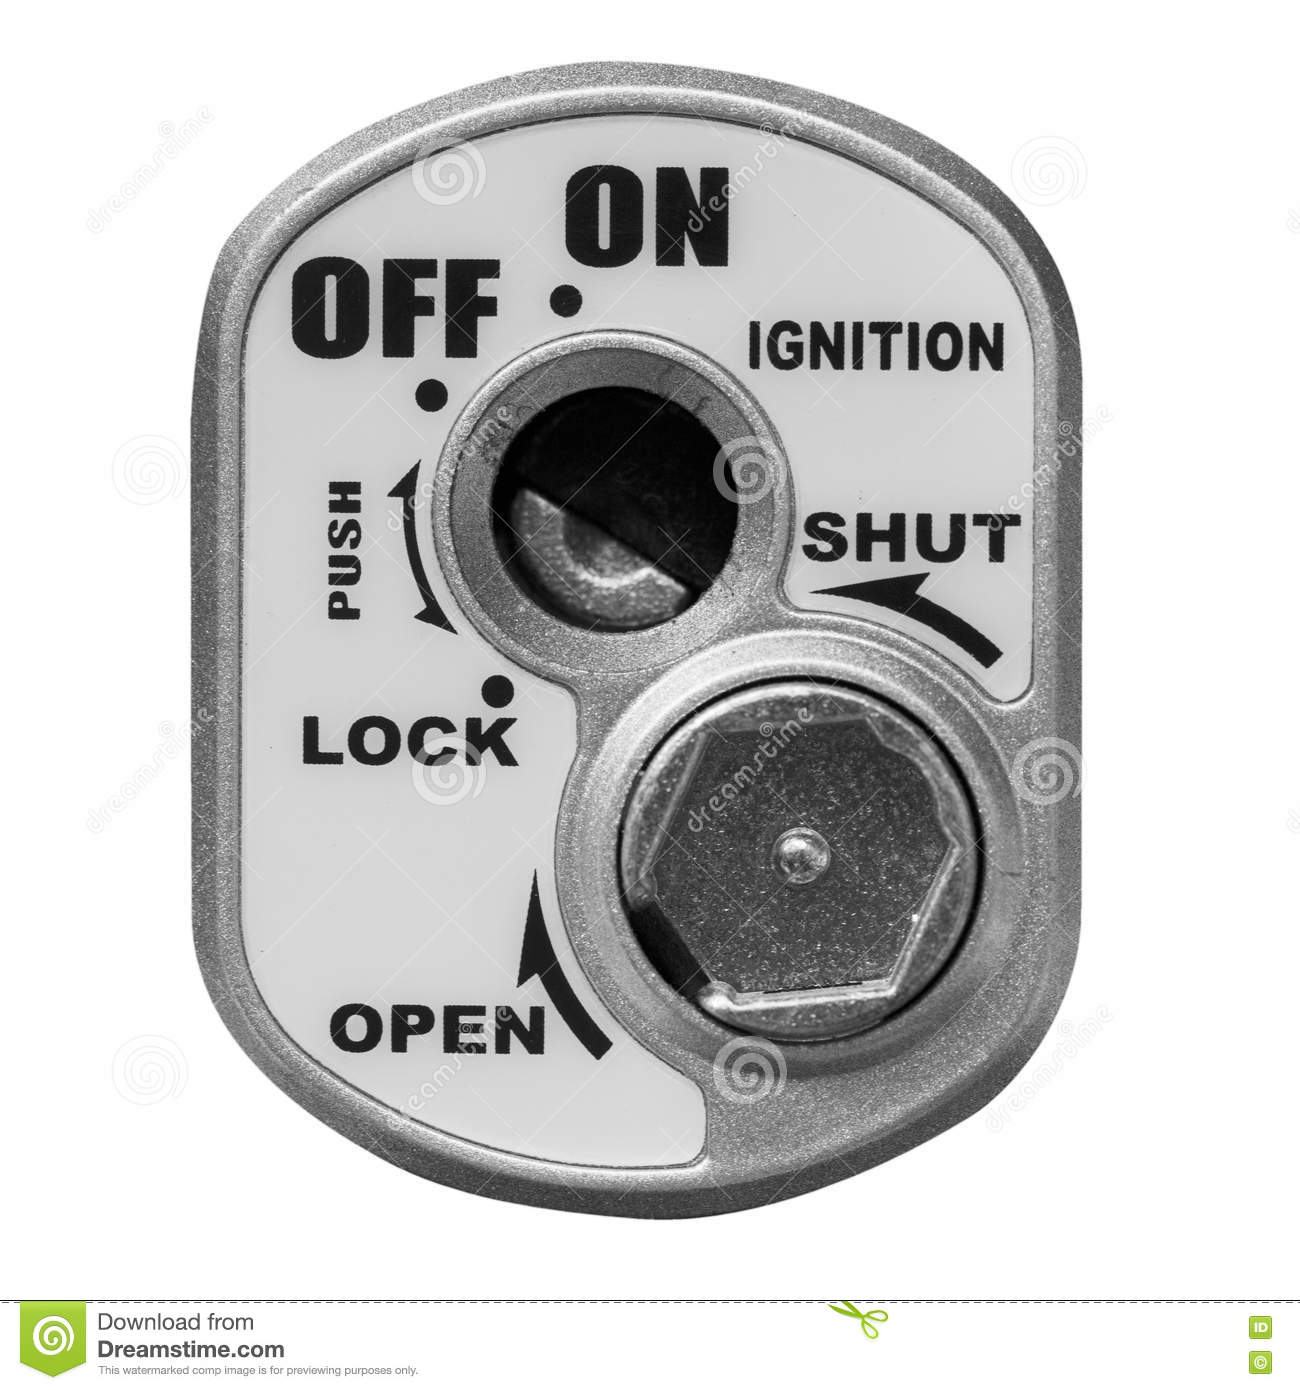 key hole on a motorcycle ignition switch on white background stock photo image 73452705. Black Bedroom Furniture Sets. Home Design Ideas